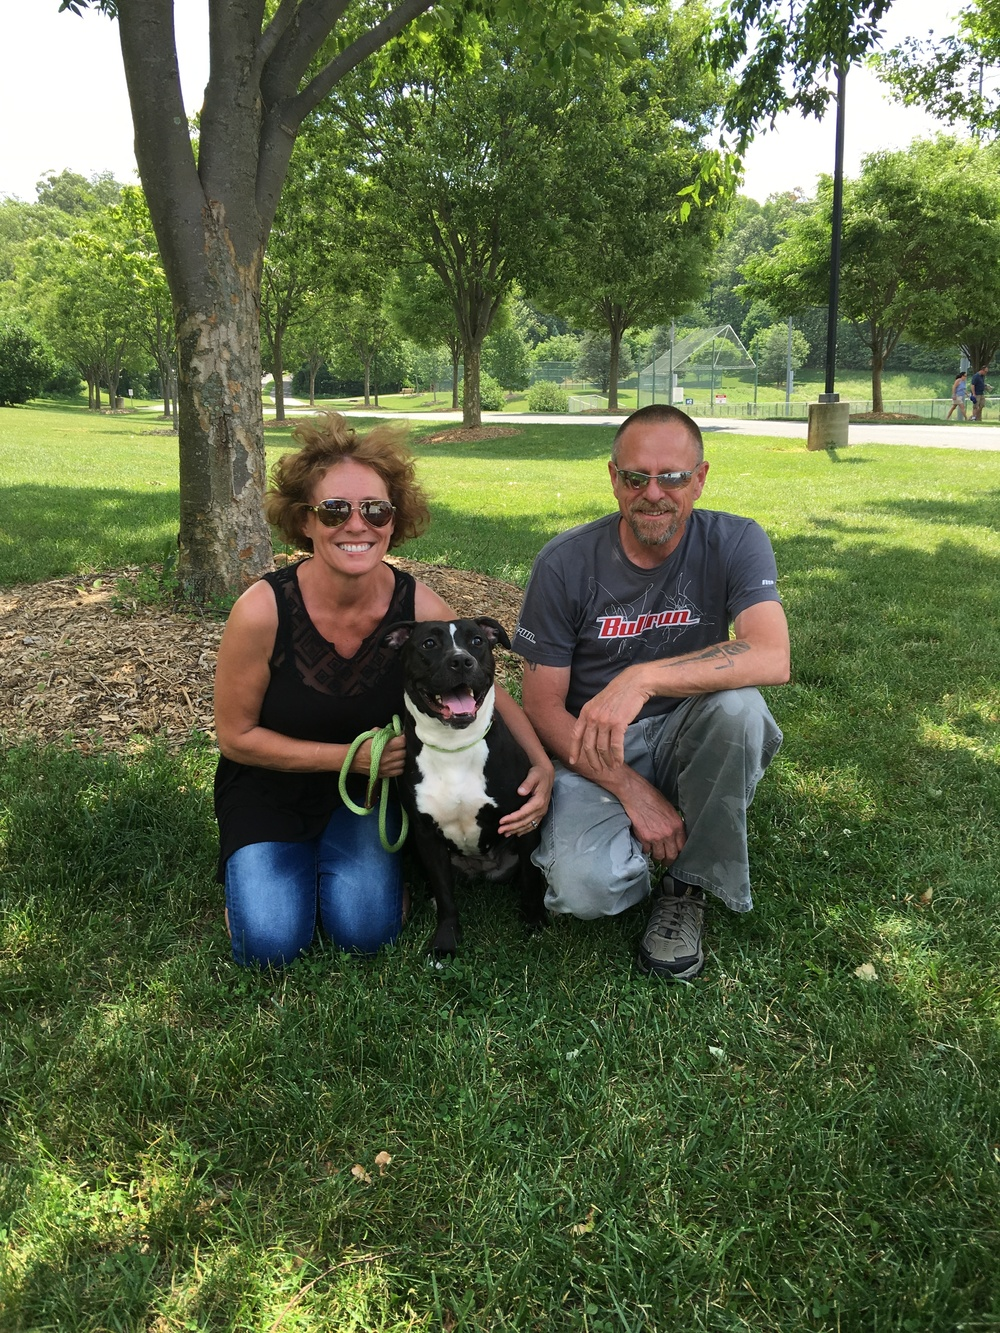 Lola has a huge smile after being adopted by Joyce and Sean!